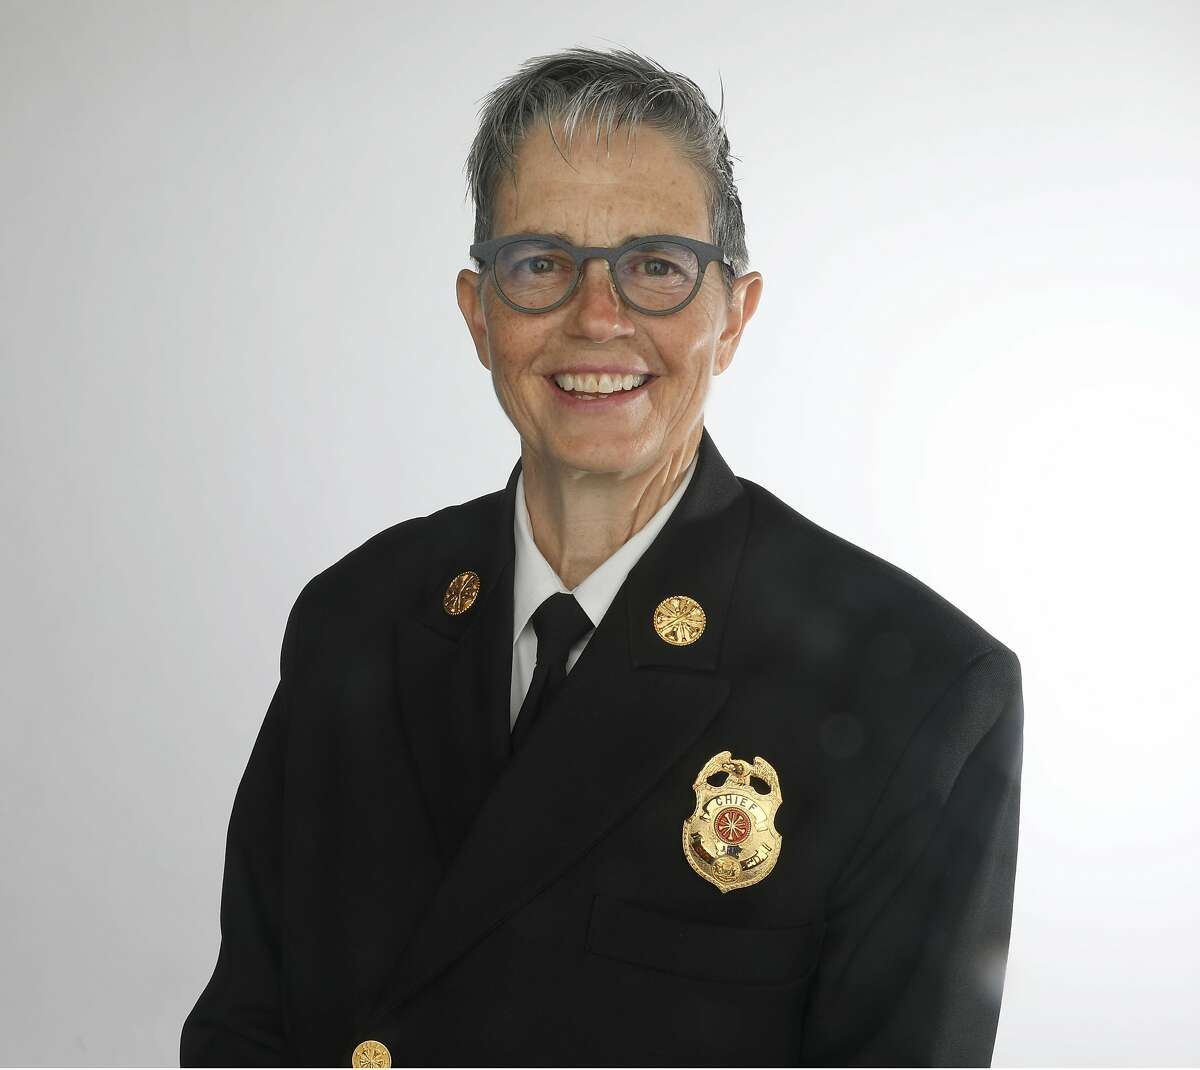 New SF fire chief Jeanine Nicholson photographed before she does a a new episode of SF City Insider podcast on Tuesday, Aug. 6, 2019 in San Francisco, Calif.